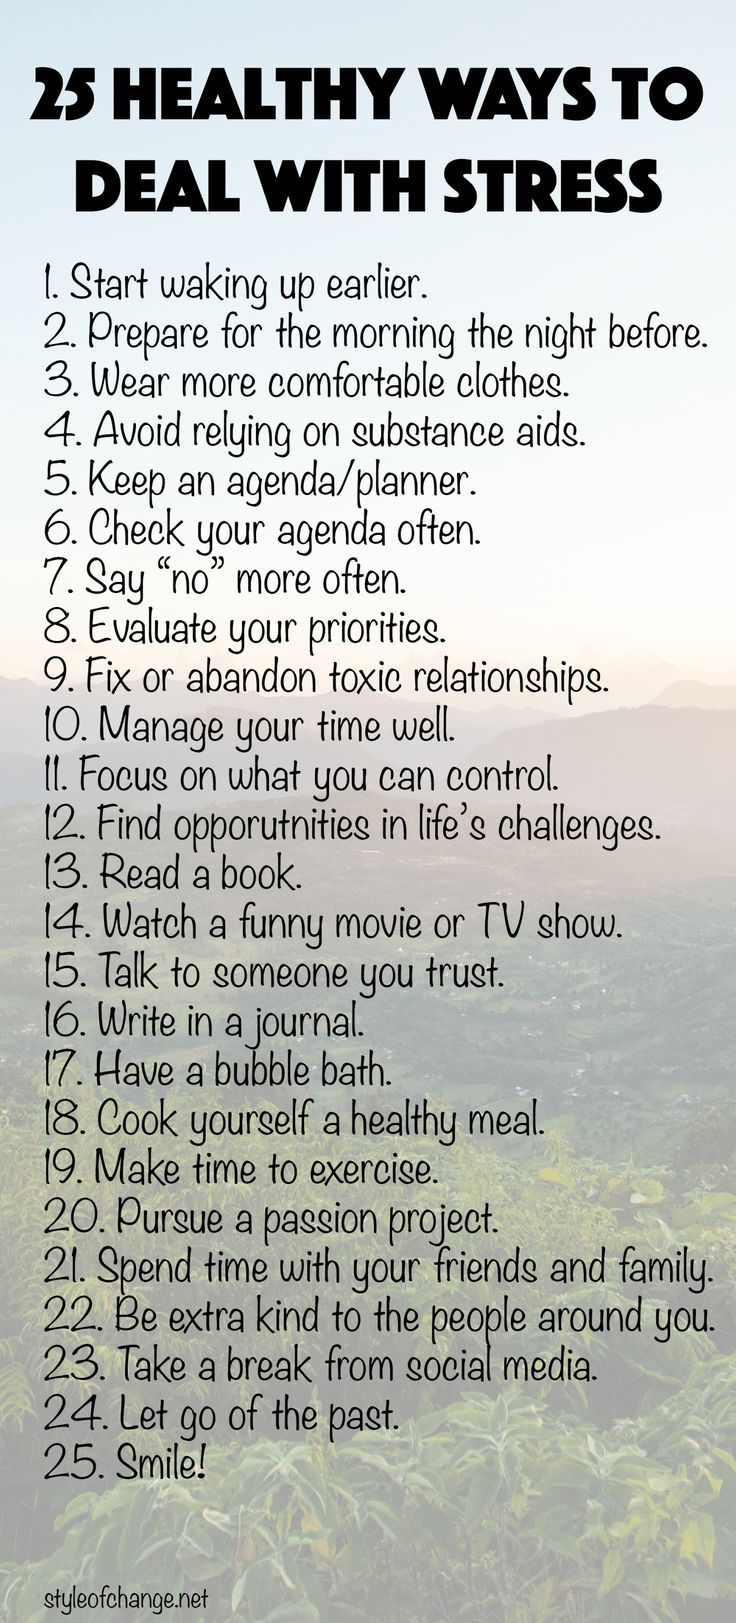 10 Ways to Cope With Depression